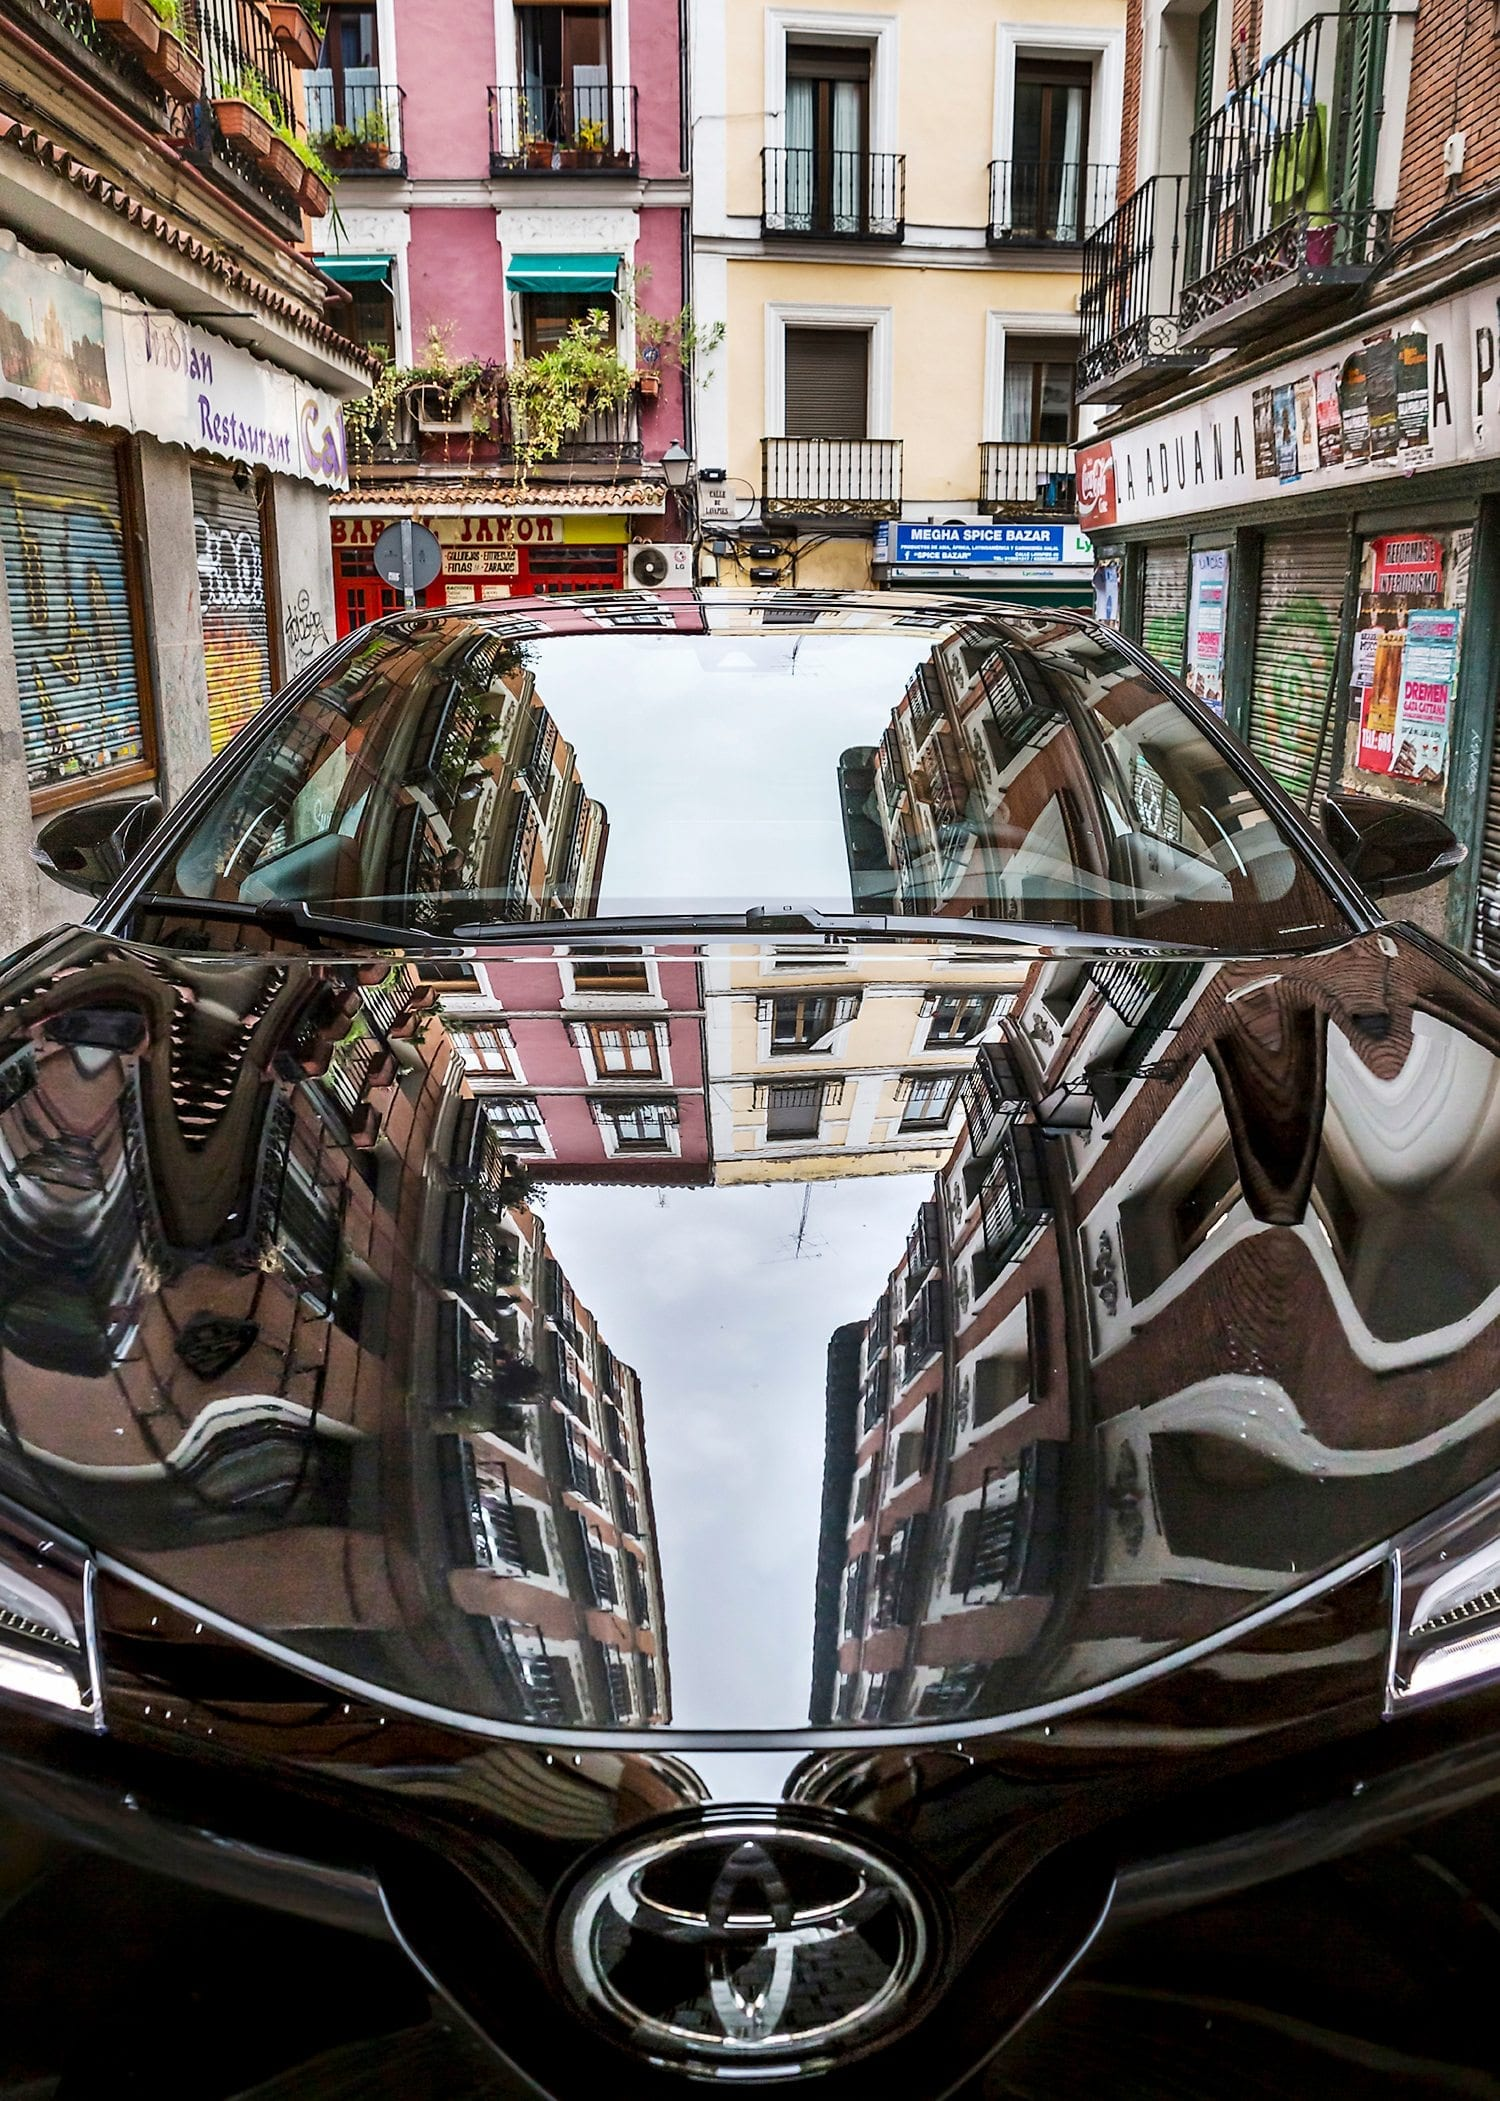 Urban reflections Madrid Toyota C-HR car Toyota Motor Europe hybrid car photography picturelyspoken SeeMyCity Marianne Hope